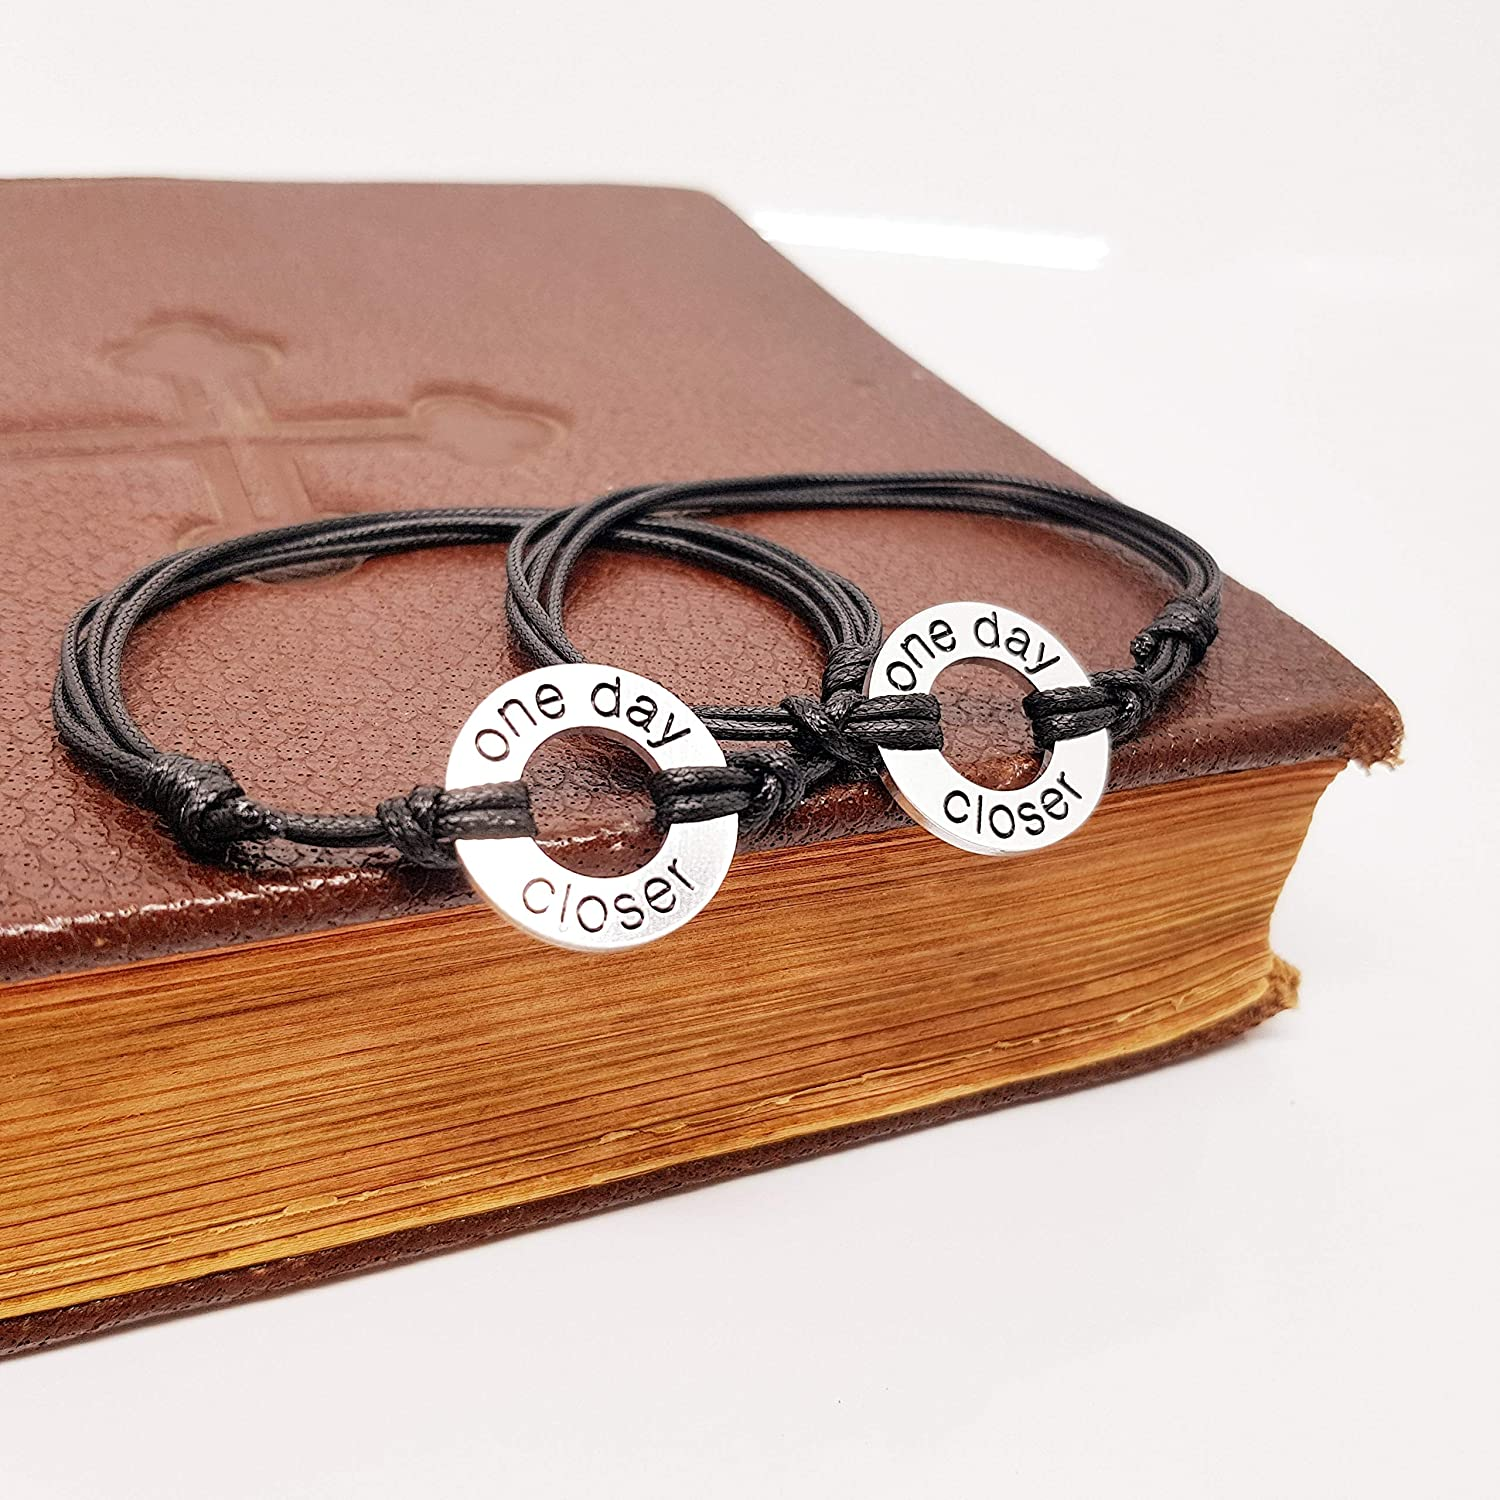 Anniversary gifts for men Washer Bracelet Couples Gifts Set of 2 Boyfriend Gift One Day Closer PJGWBODC Long Distance Relationship Deployment ...